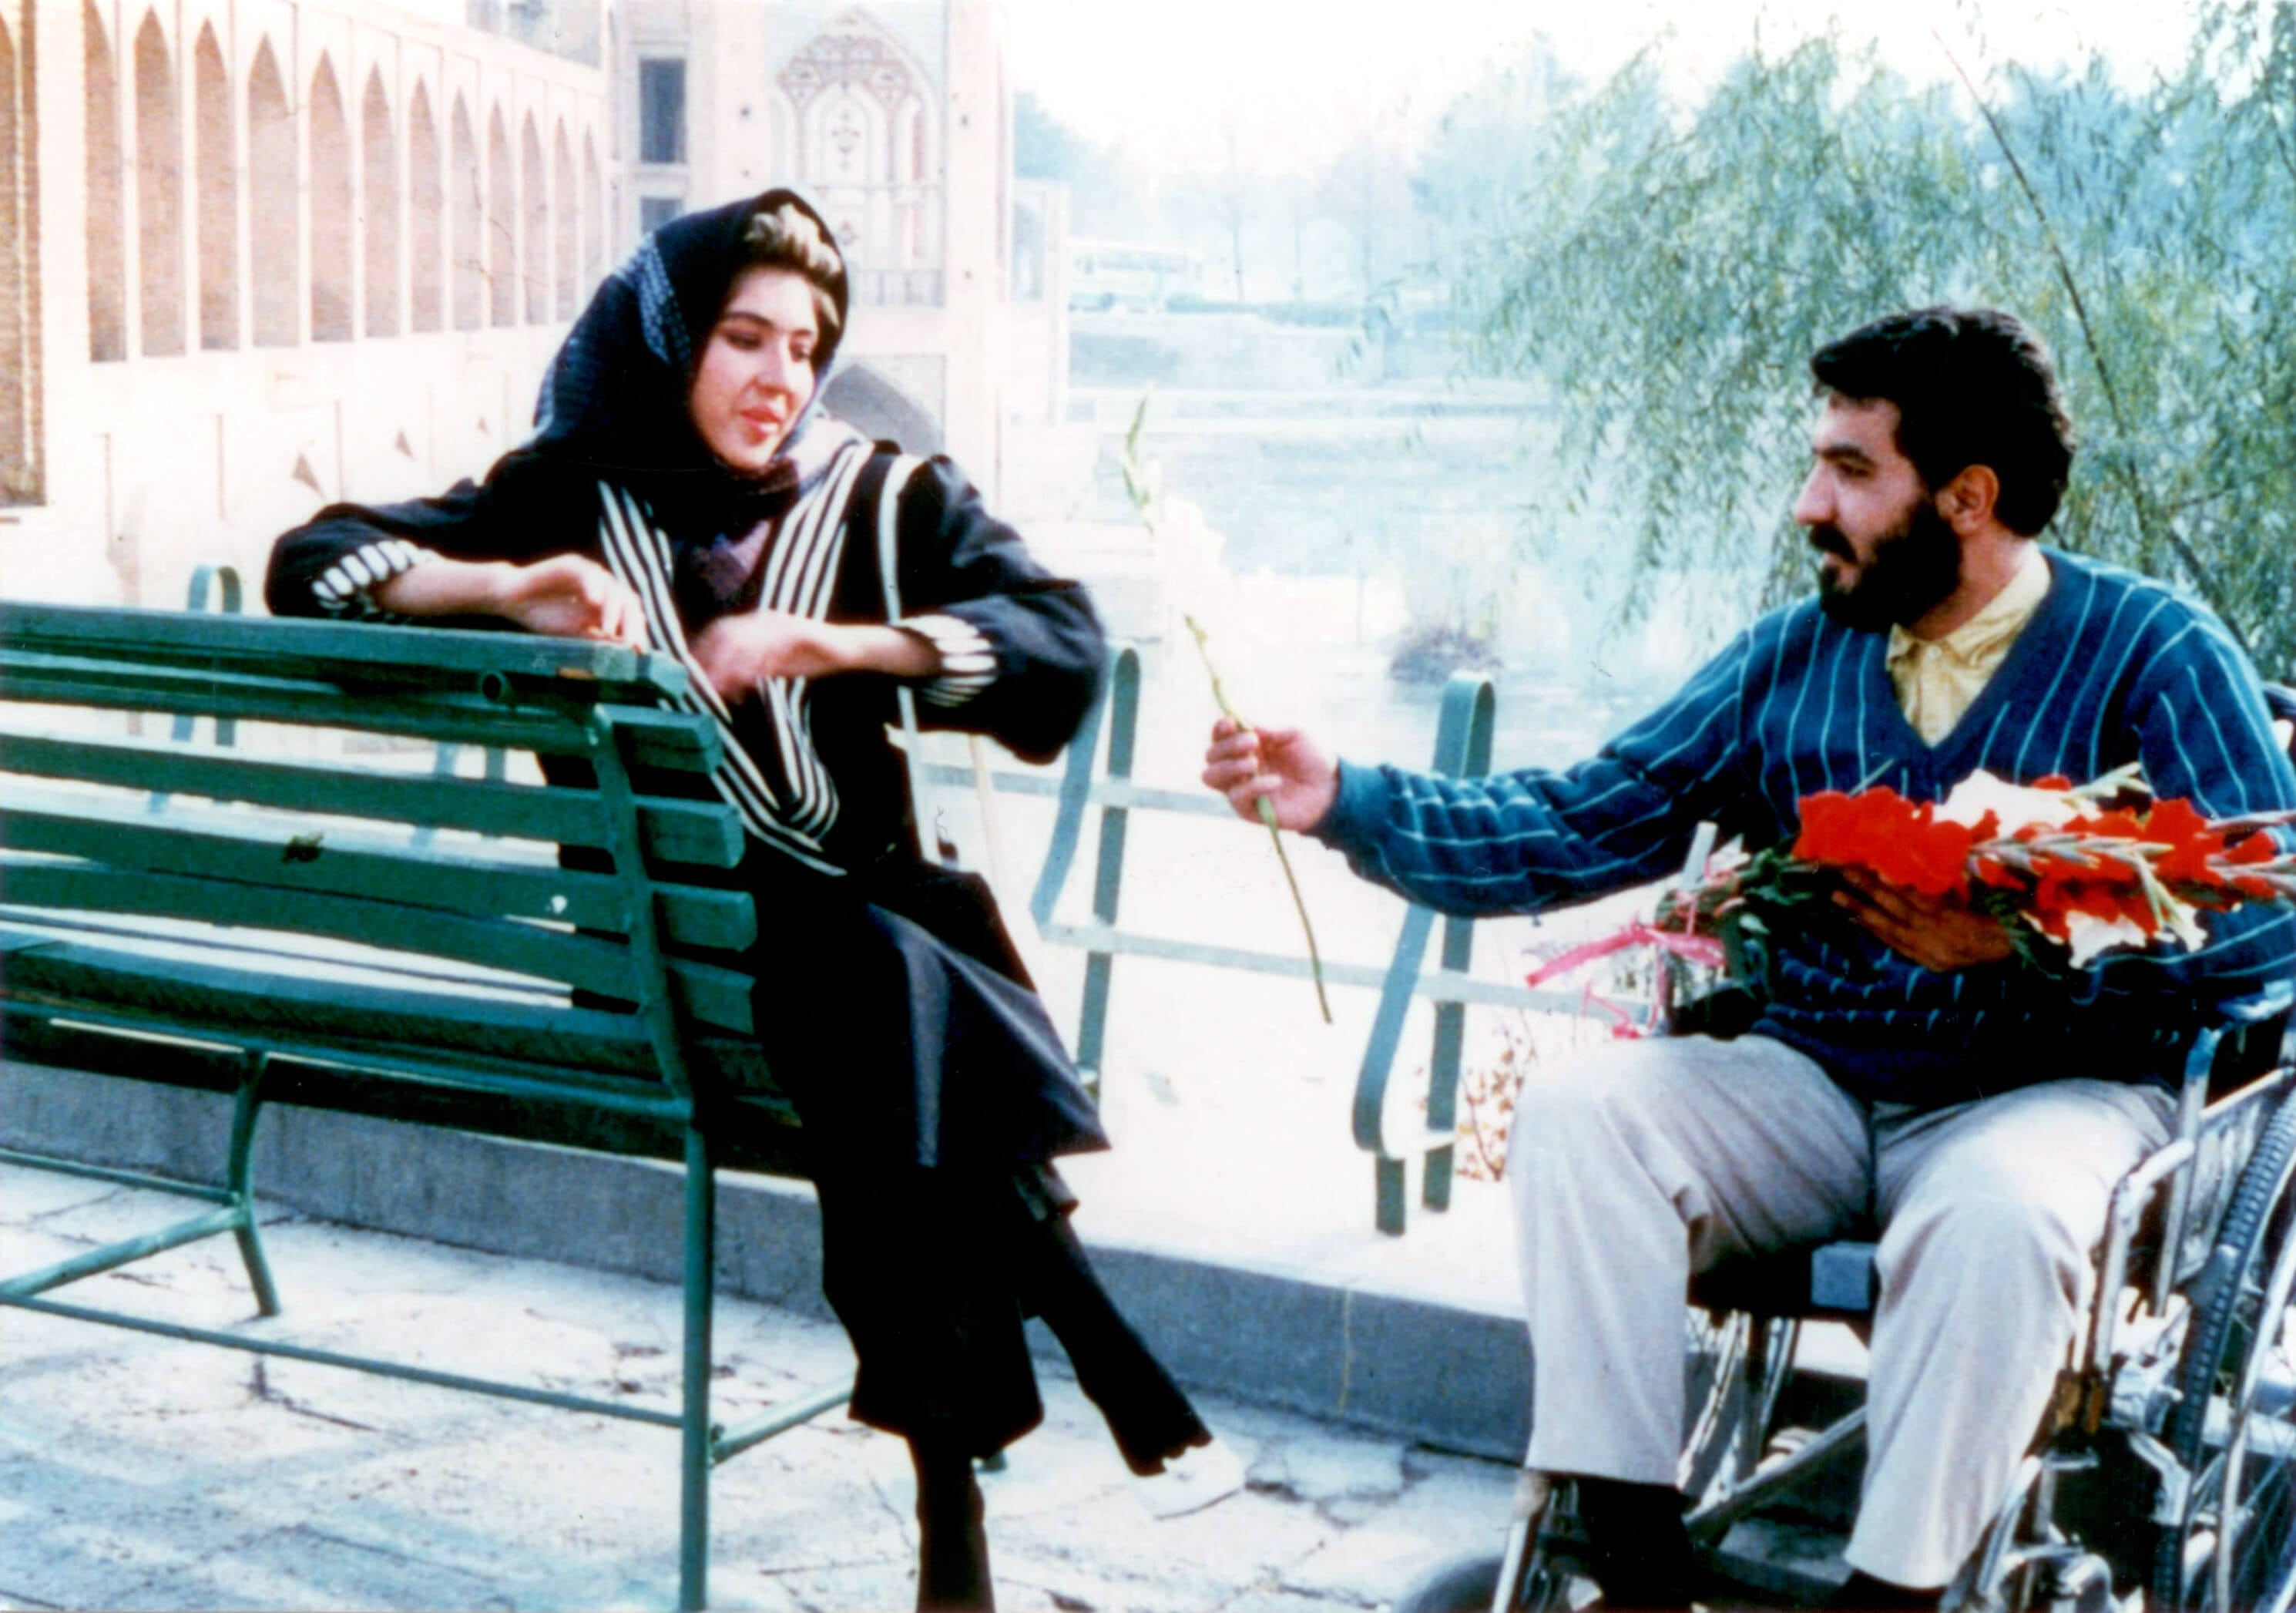 The Nights Of Zayandeh-rood by Mohsen Makhmalbaf - 01